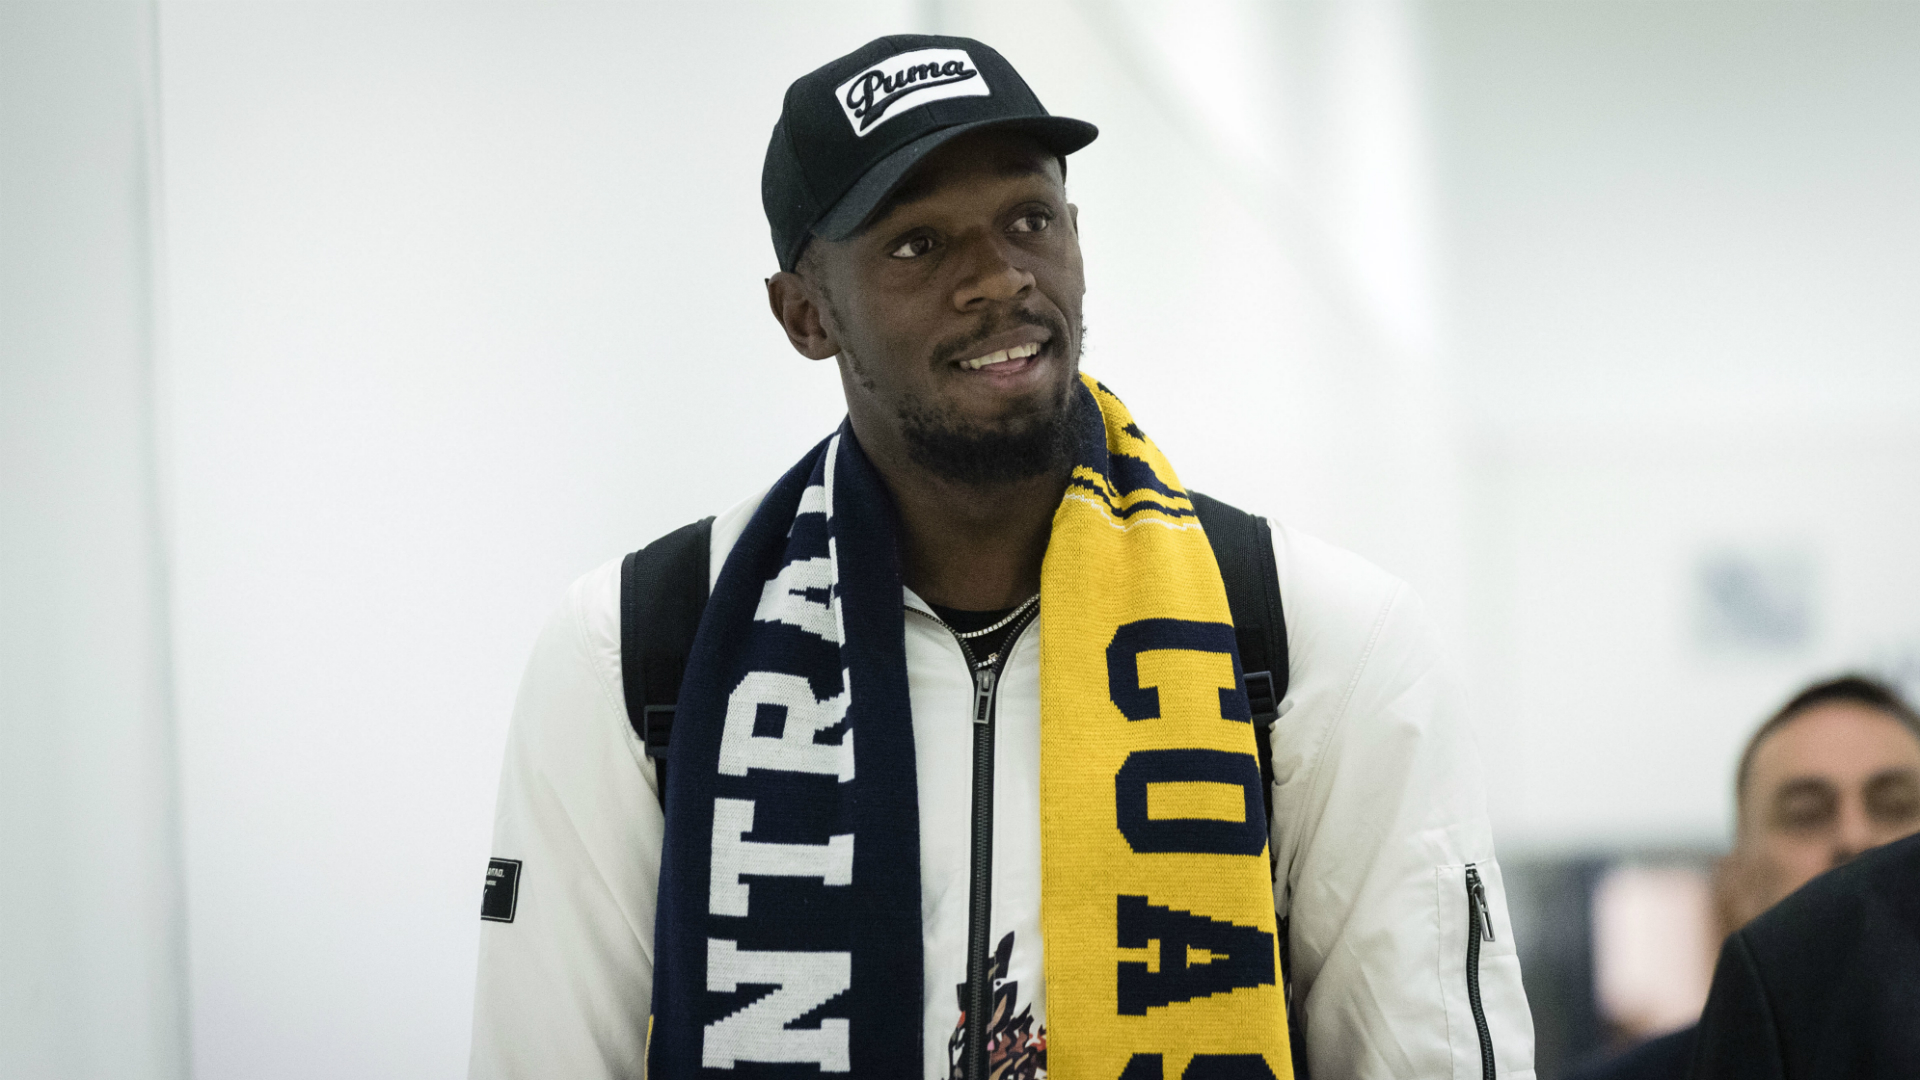 Usain Bolt arrives in Sydney for A-League trial run